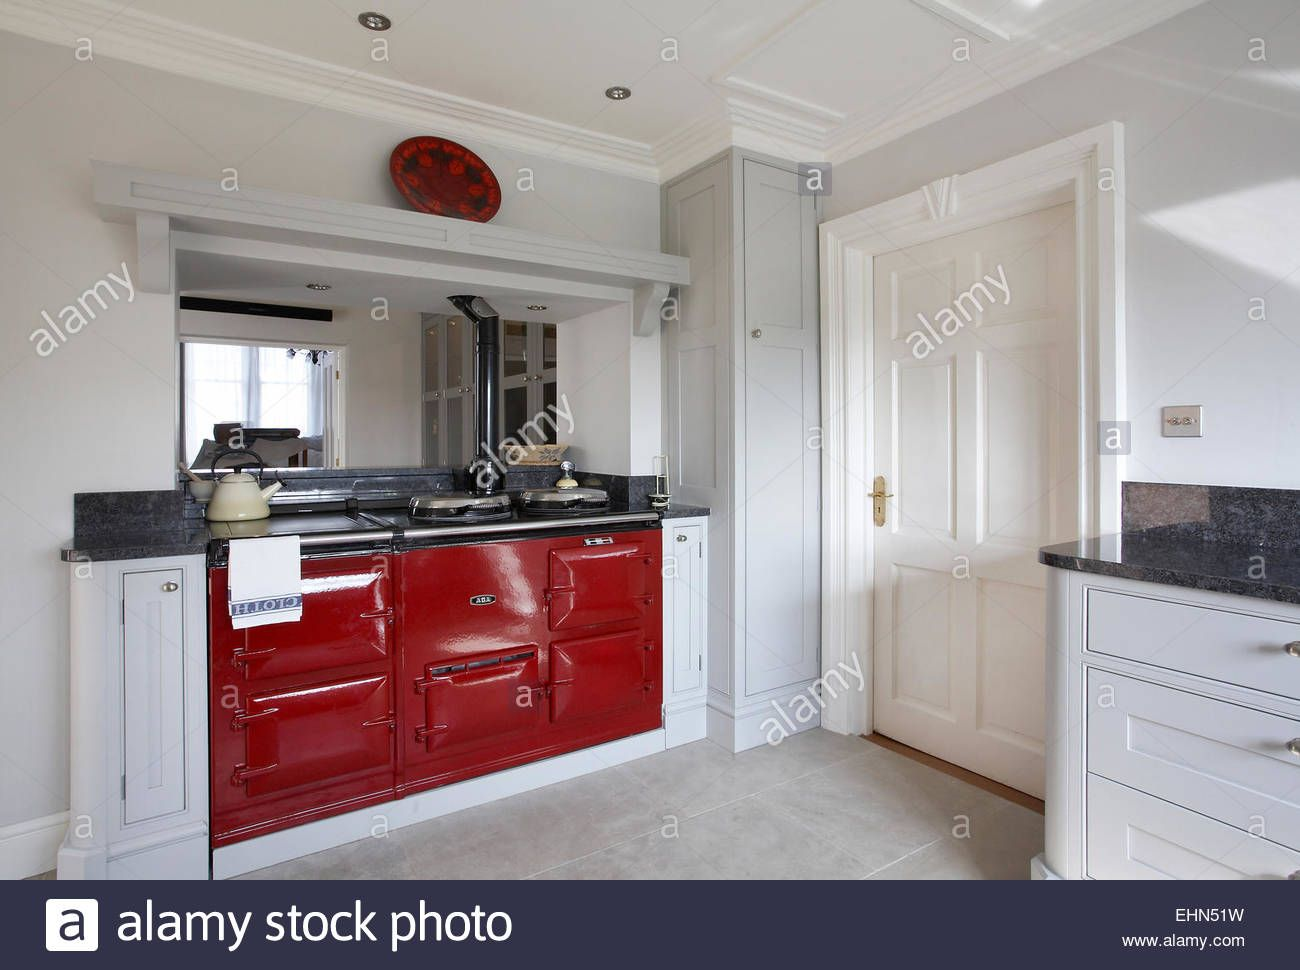 Best A Red Aga Cooker In A Modern Kitchen In A Home In The Uk 400 x 300